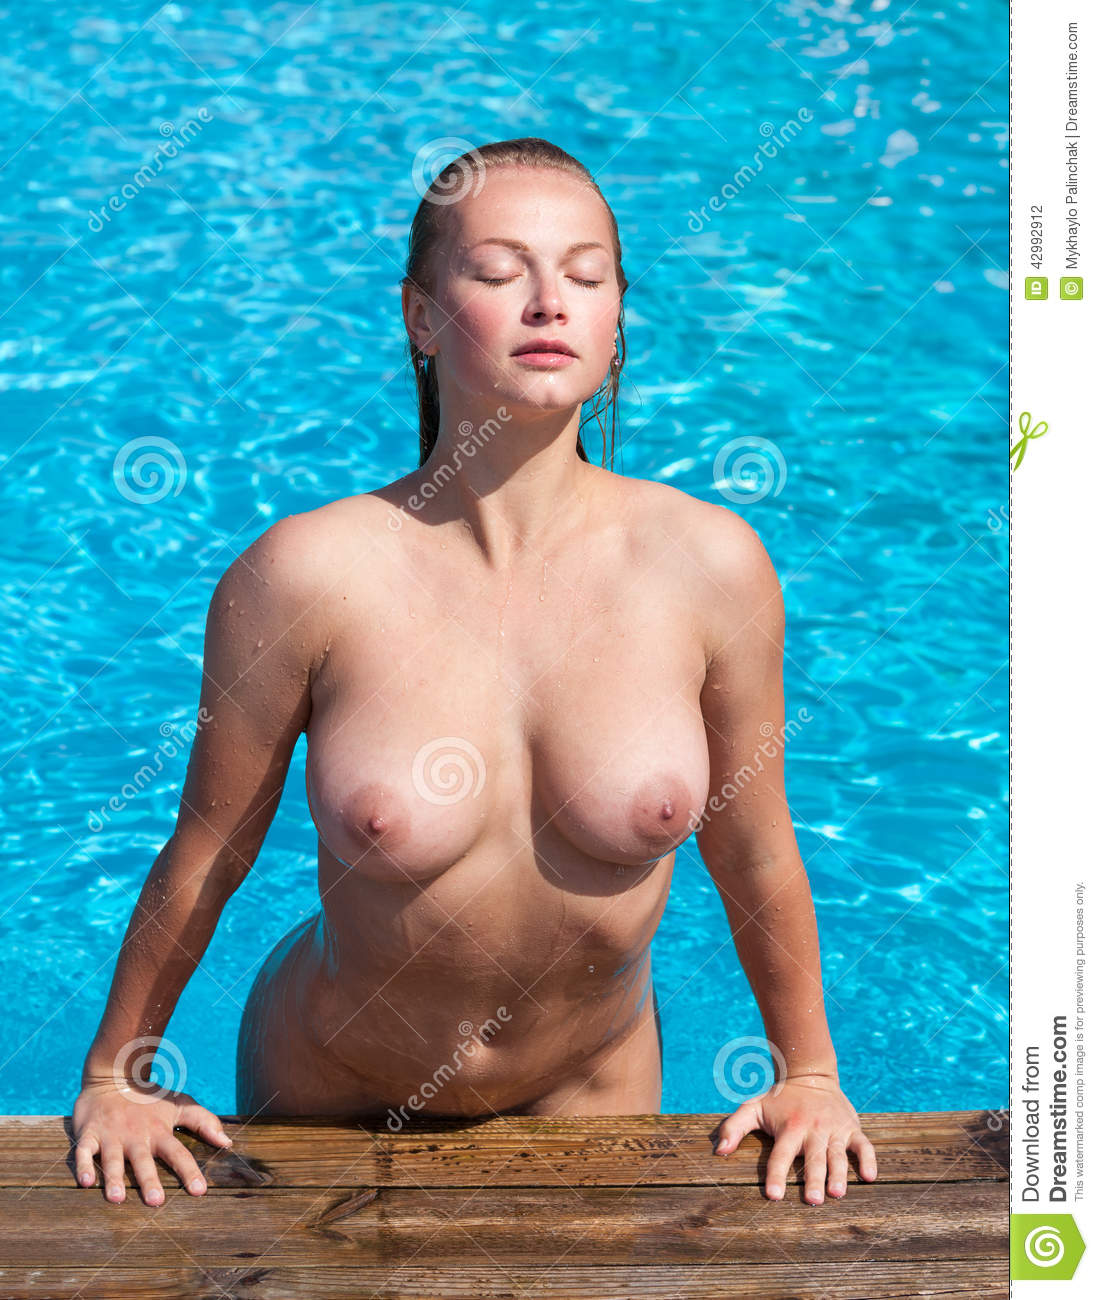 bare women in pool